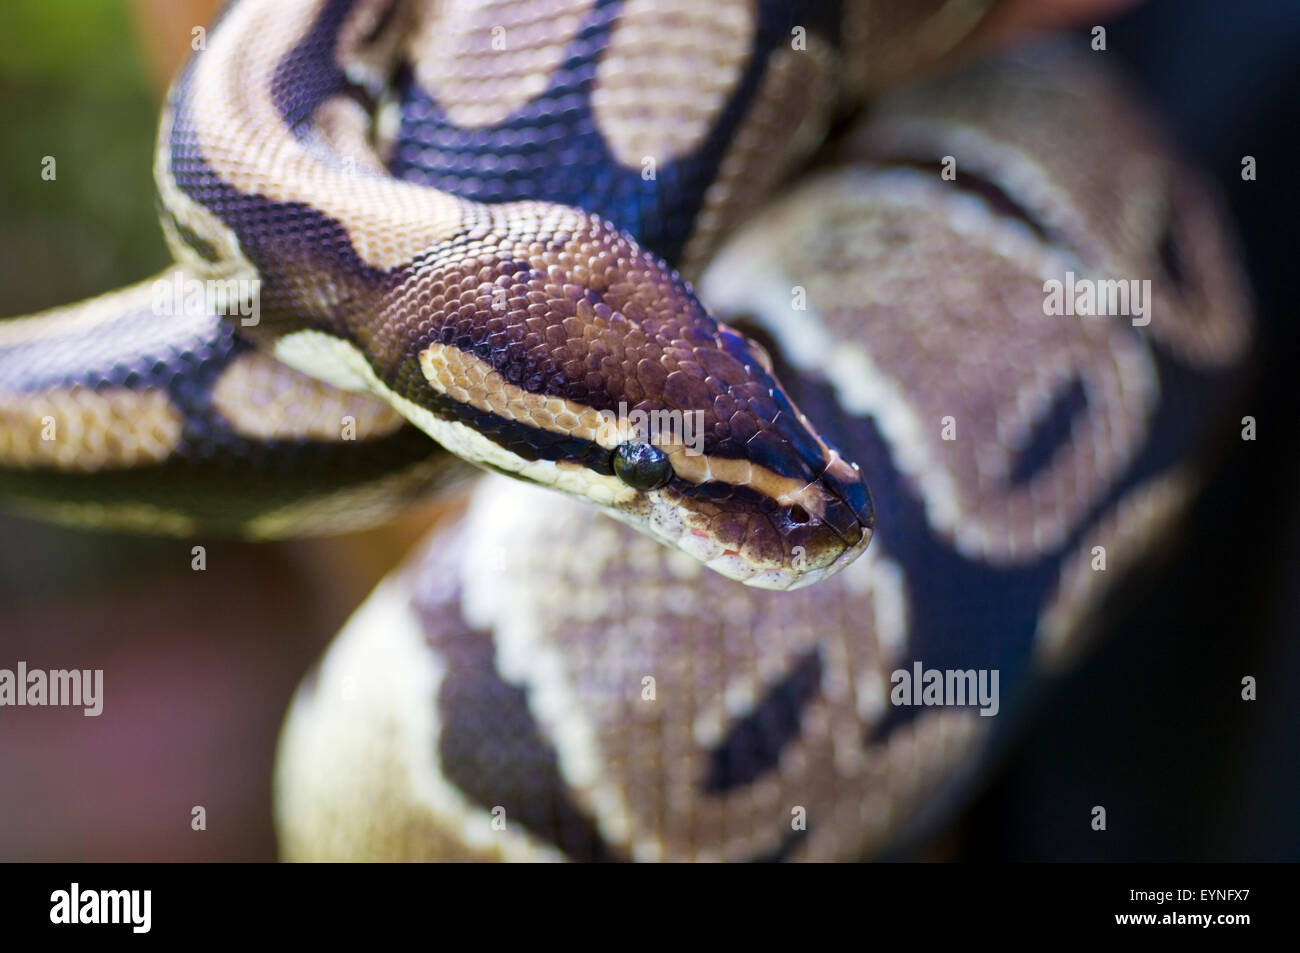 Close-up image of the head and body of an adult royal python, python regius. This is a captive animal. - Stock Image